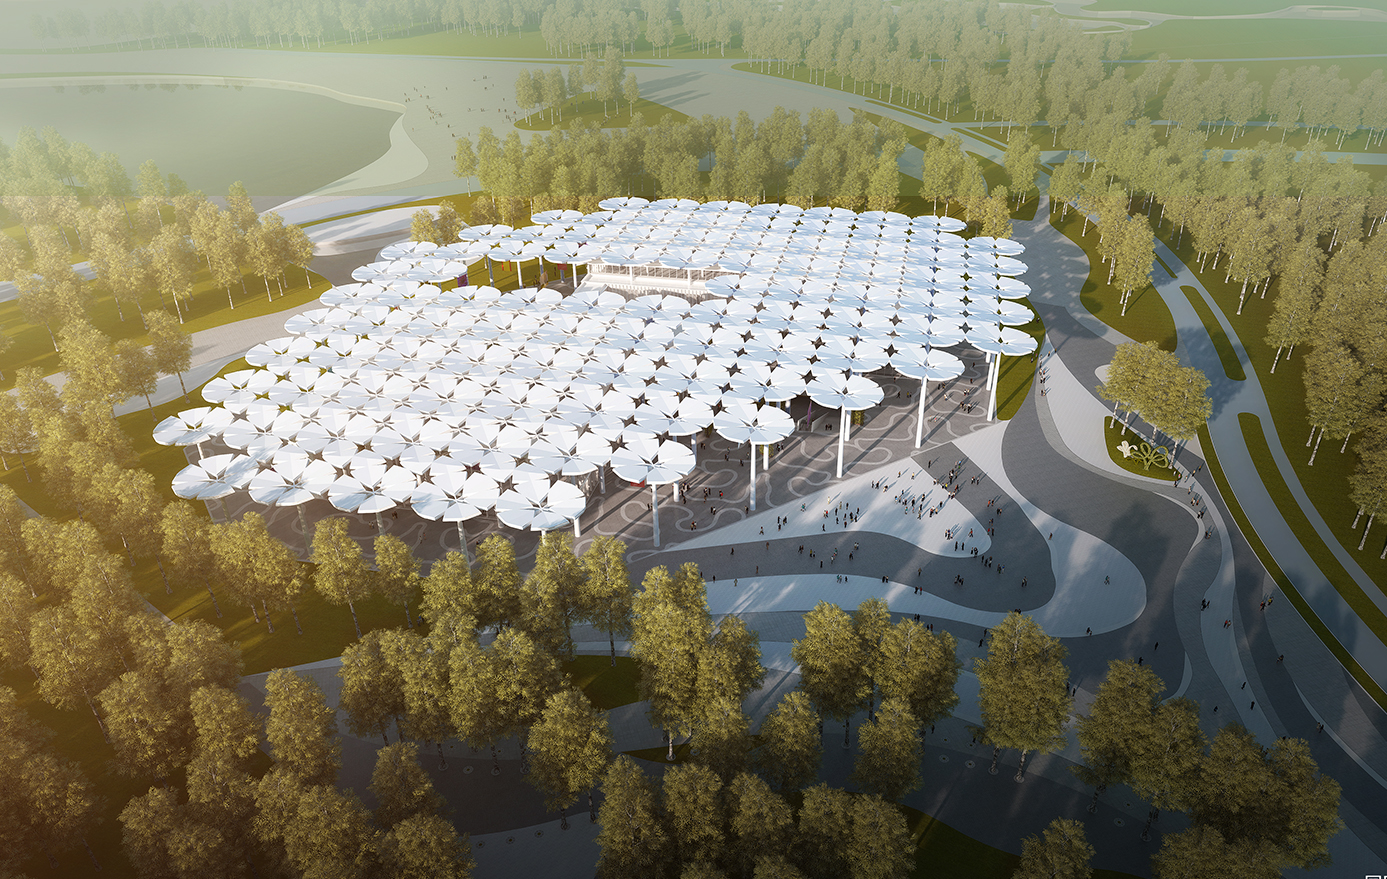 Trial operation of Beijing Horticultural Expo Park to begin in April